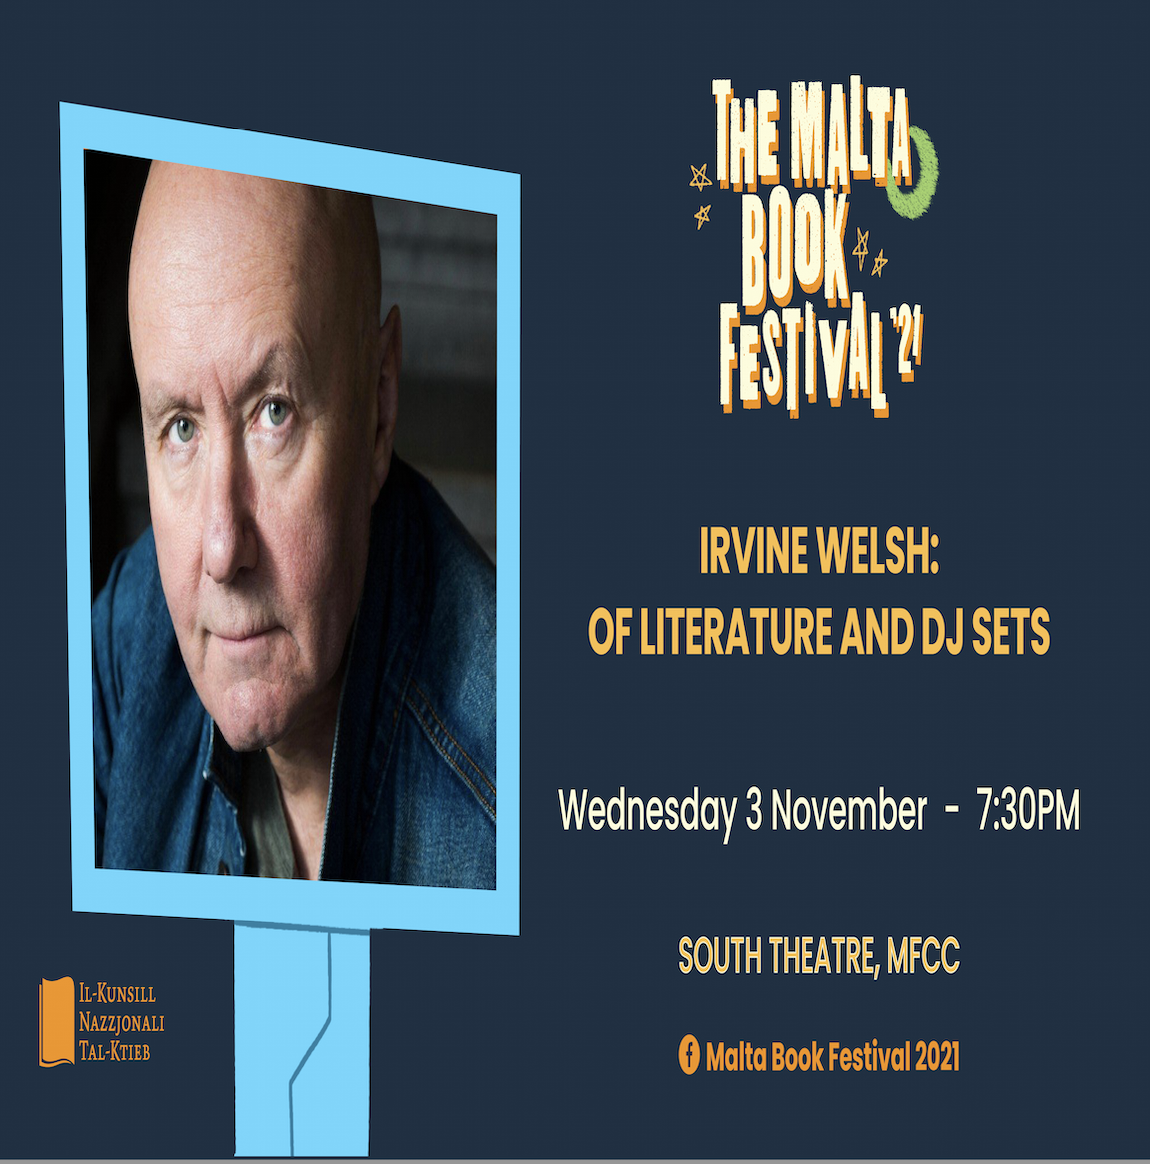 The Malta Book Festival 2021: Irvine Welsh: Of Literature and DJ Sets - 03/11/2021 poster